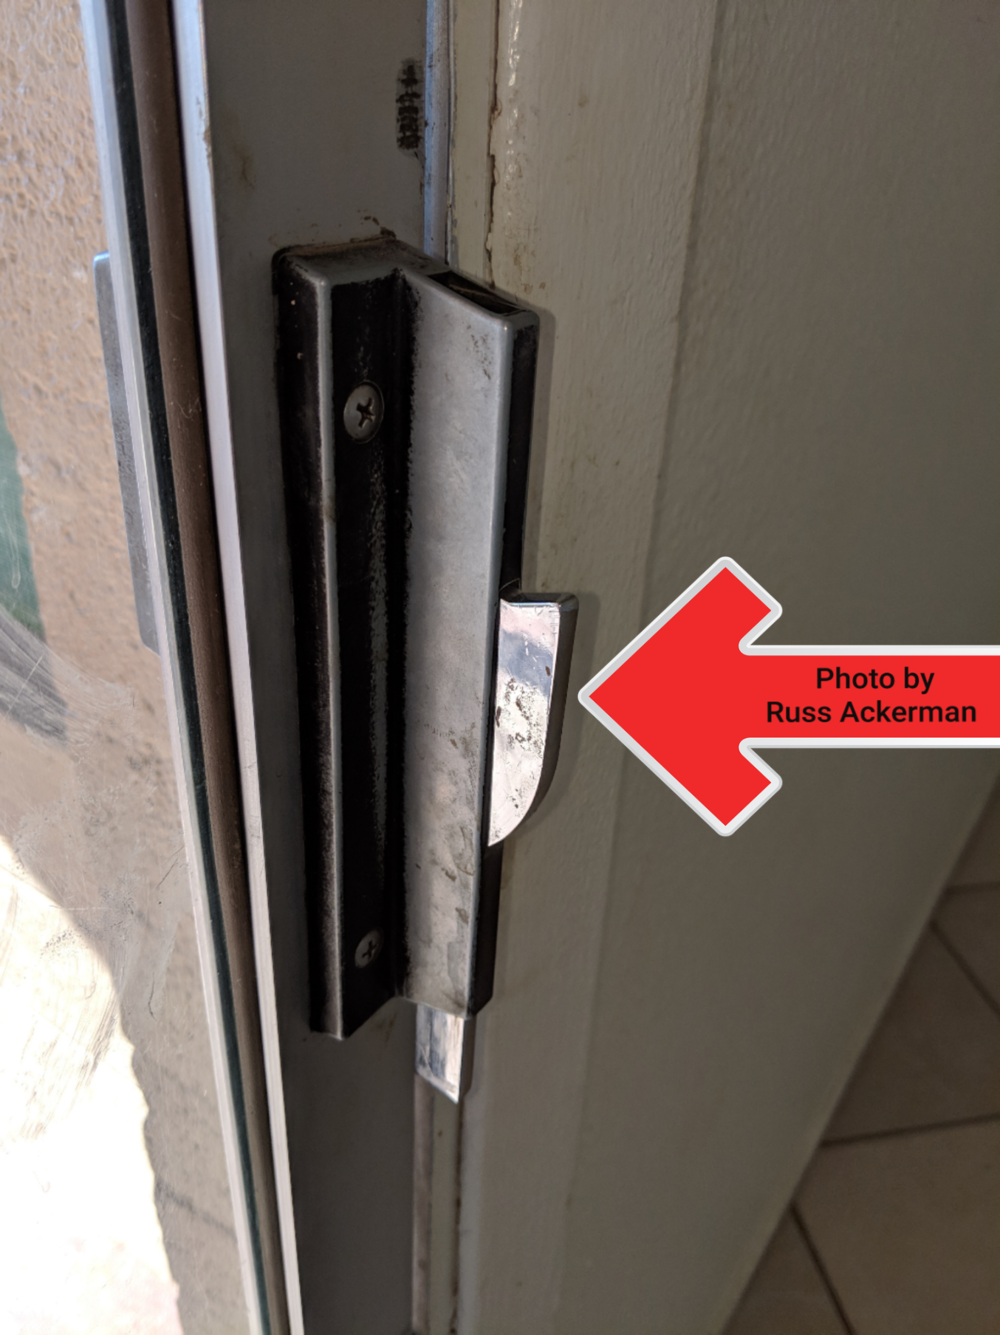 This old self locking patio door latch may lock you out of your home. Imagine that you're cooking or have an infant at home and you step outside for a minute. Hope you have a key.